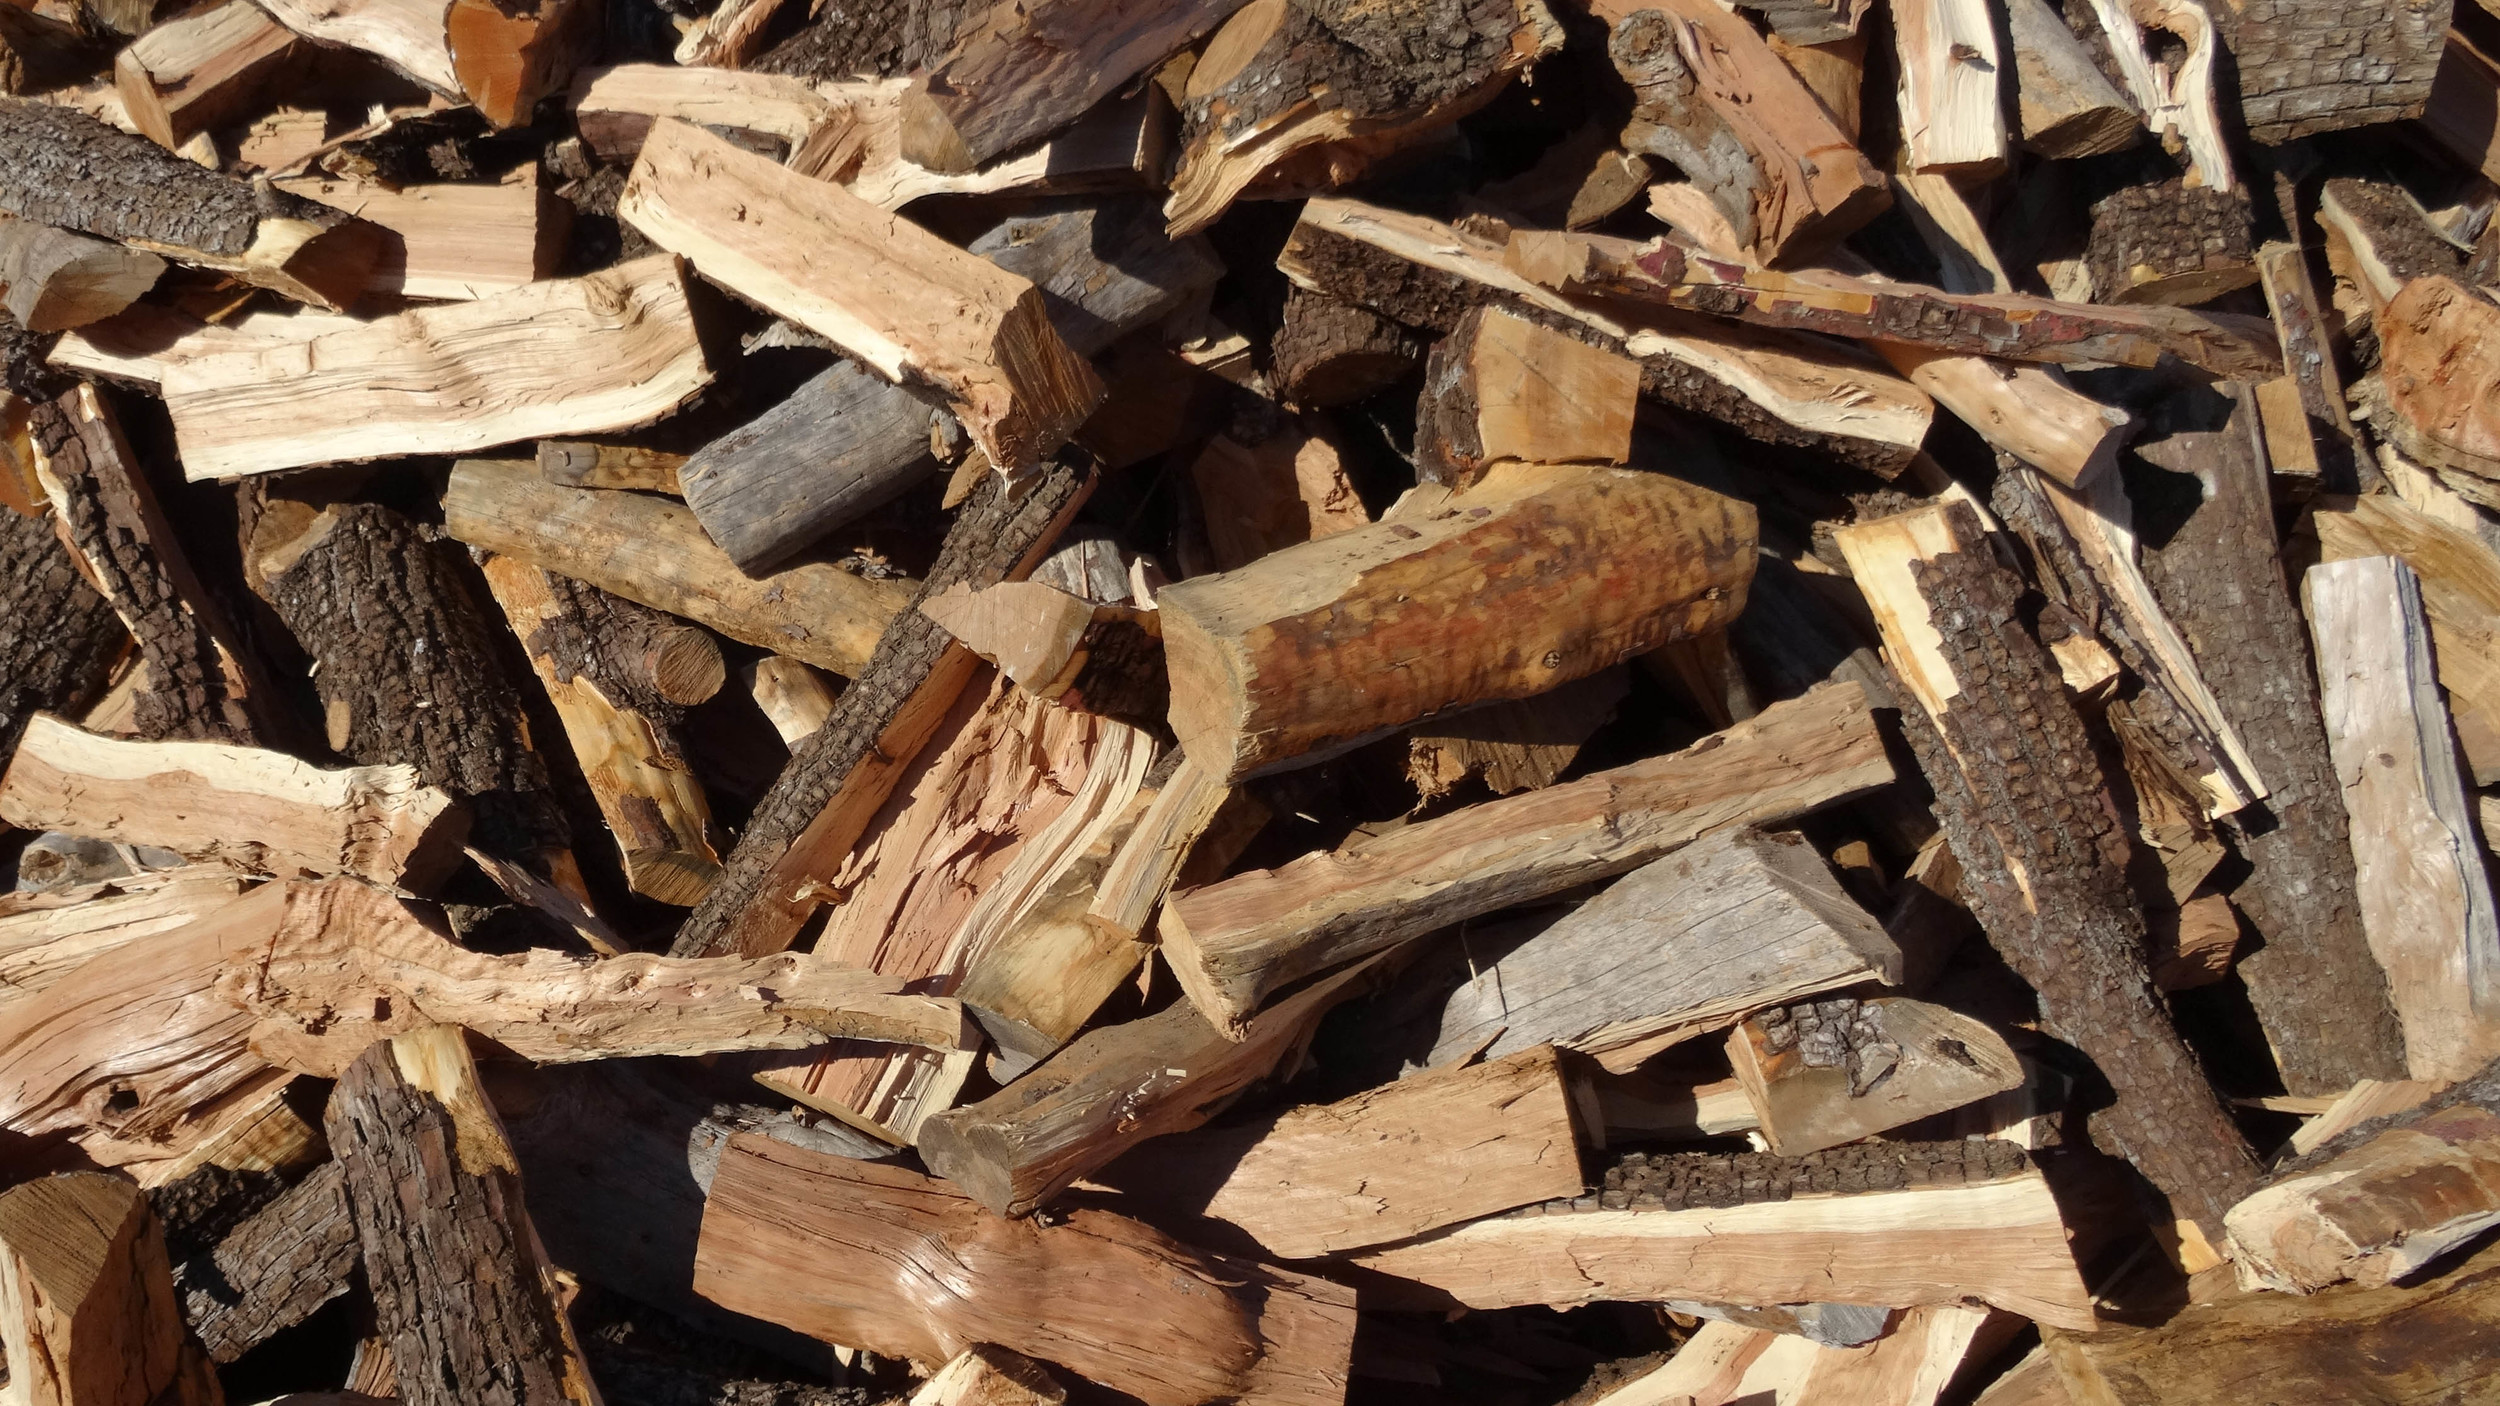 A medium hardwood. Great cedar-like aroma. Not a recommended cooking fuel.